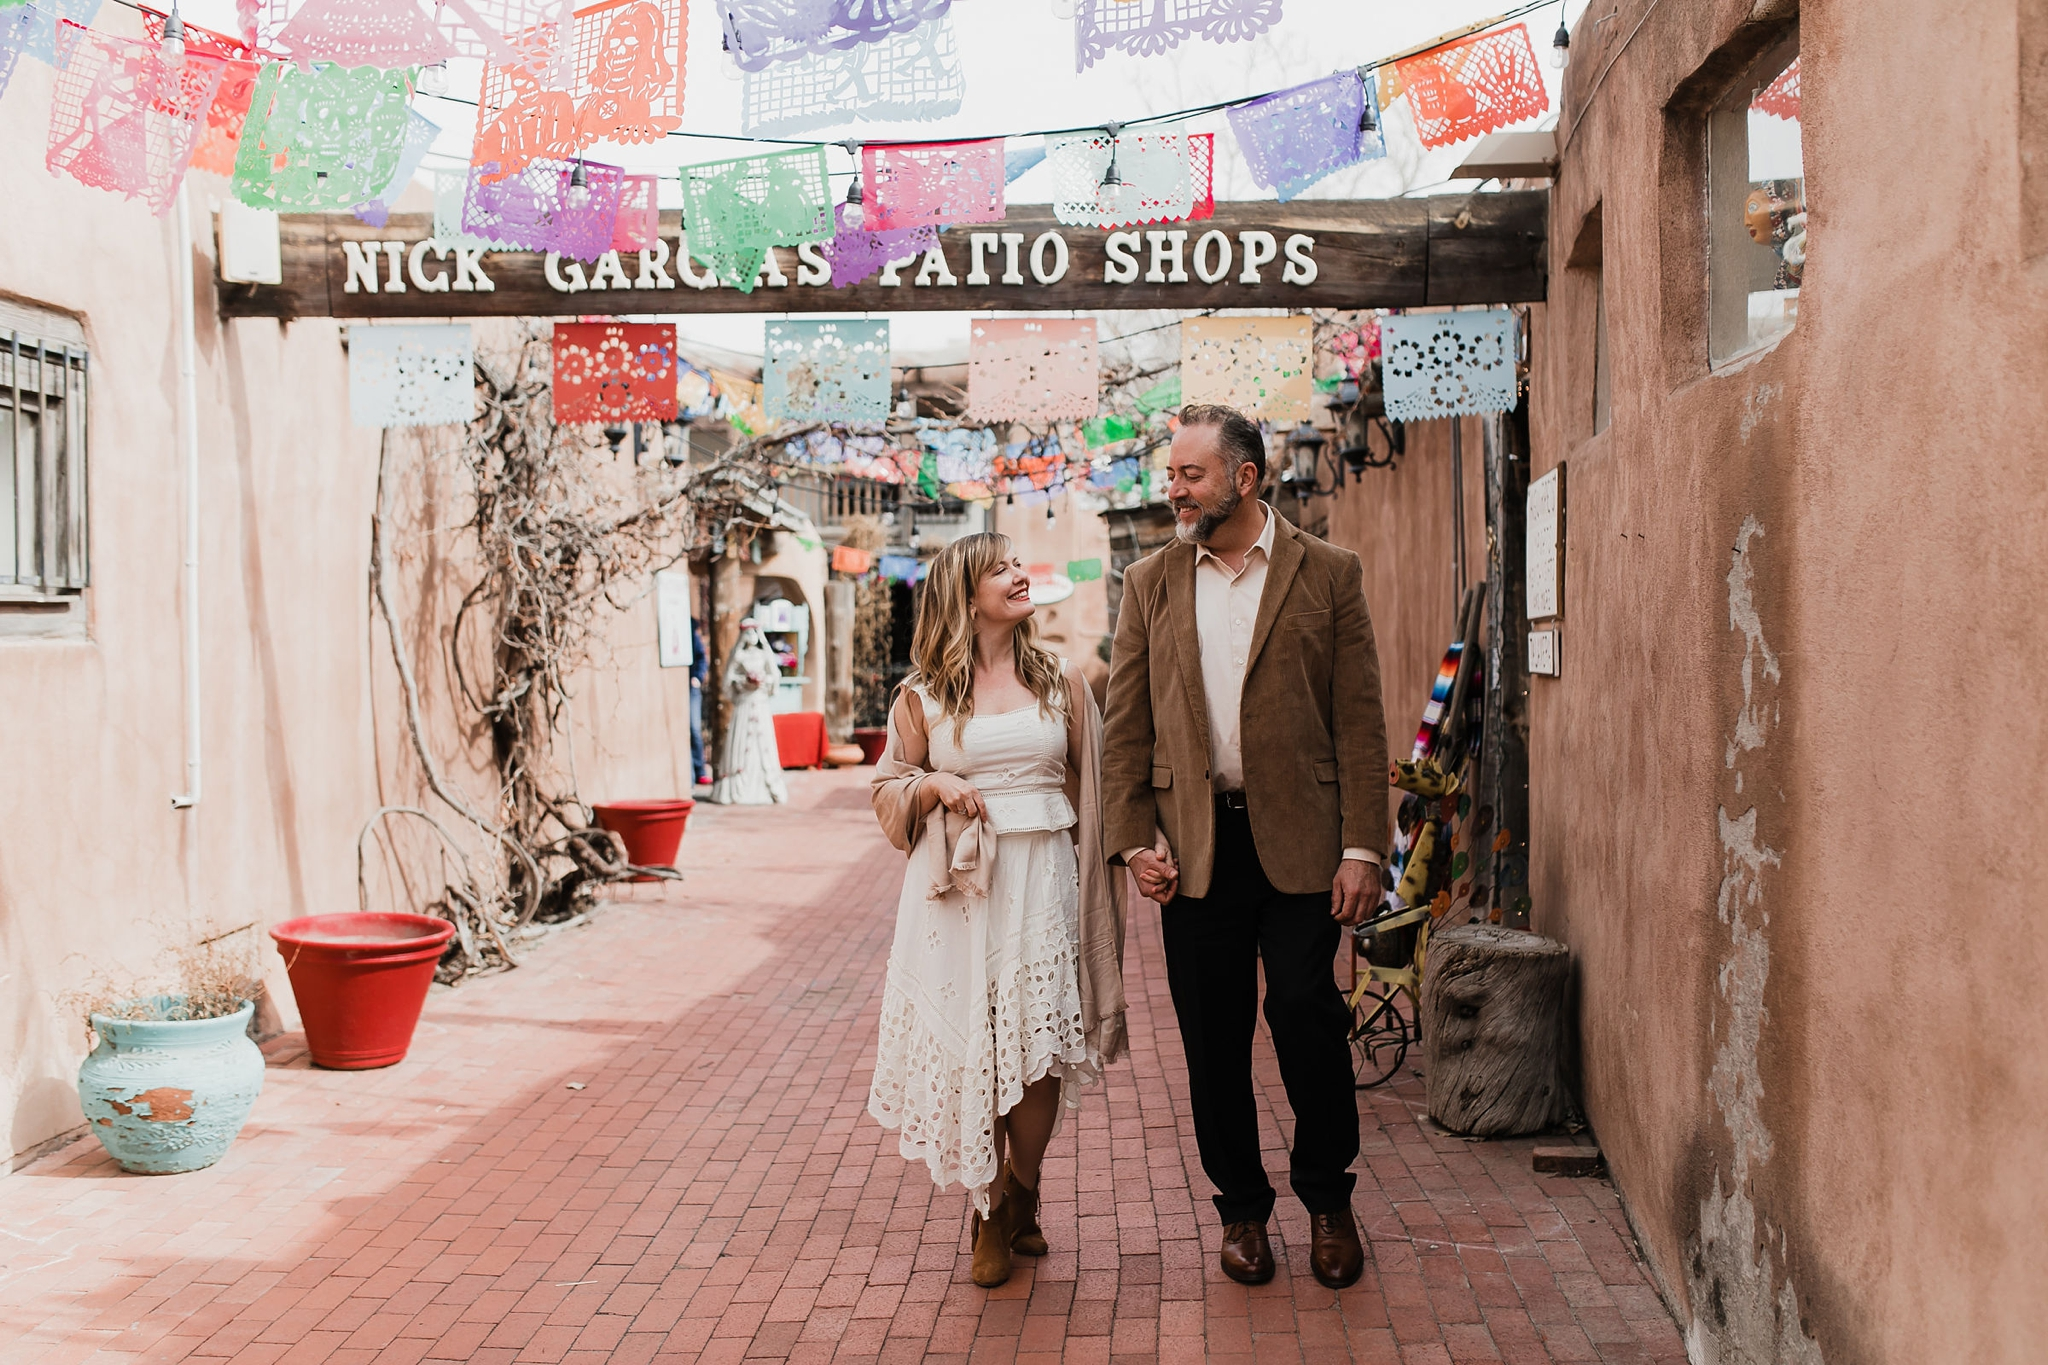 Alicia+lucia+photography+-+albuquerque+wedding+photographer+-+santa+fe+wedding+photography+-+new+mexico+wedding+photographer+-+new+mexico+engagement+-+albuquerque+engagement+-+old+town+engagement_0008.jpg